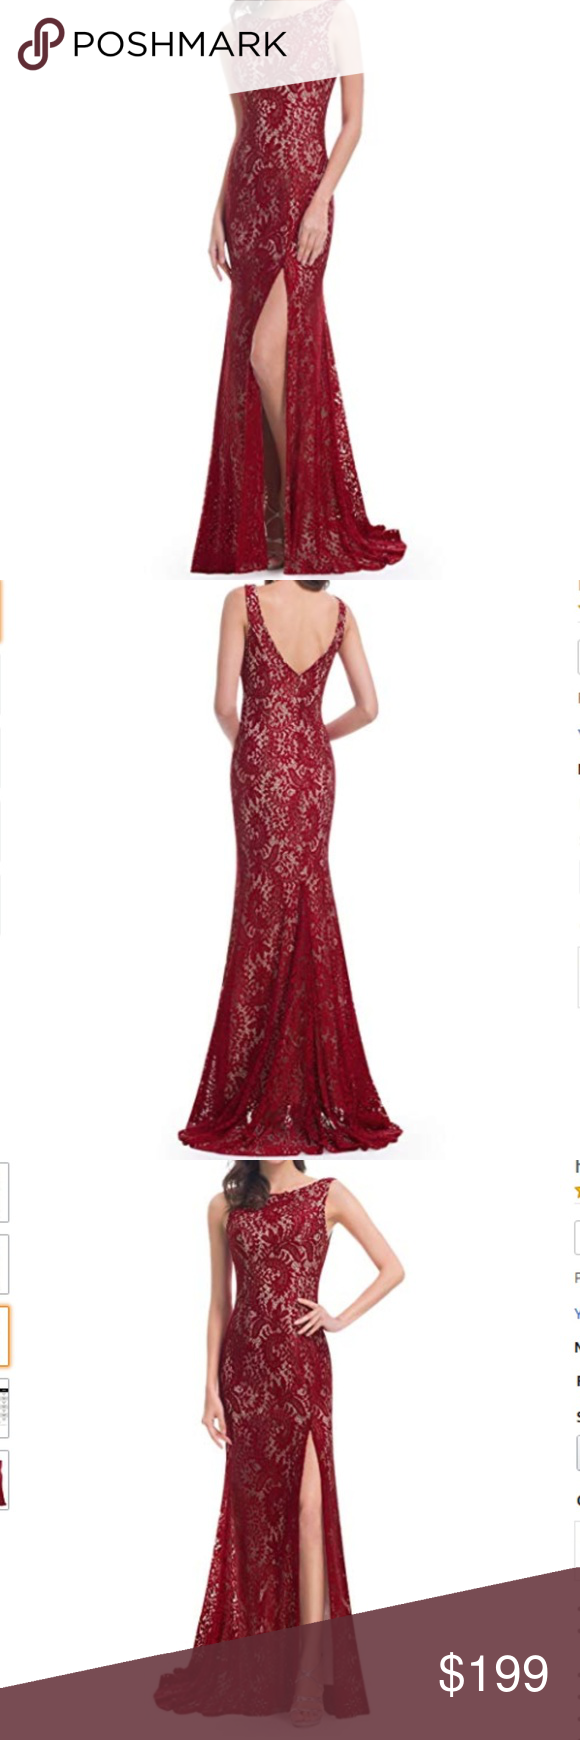 Nwt lace high slit open back evening gown boutique in my posh